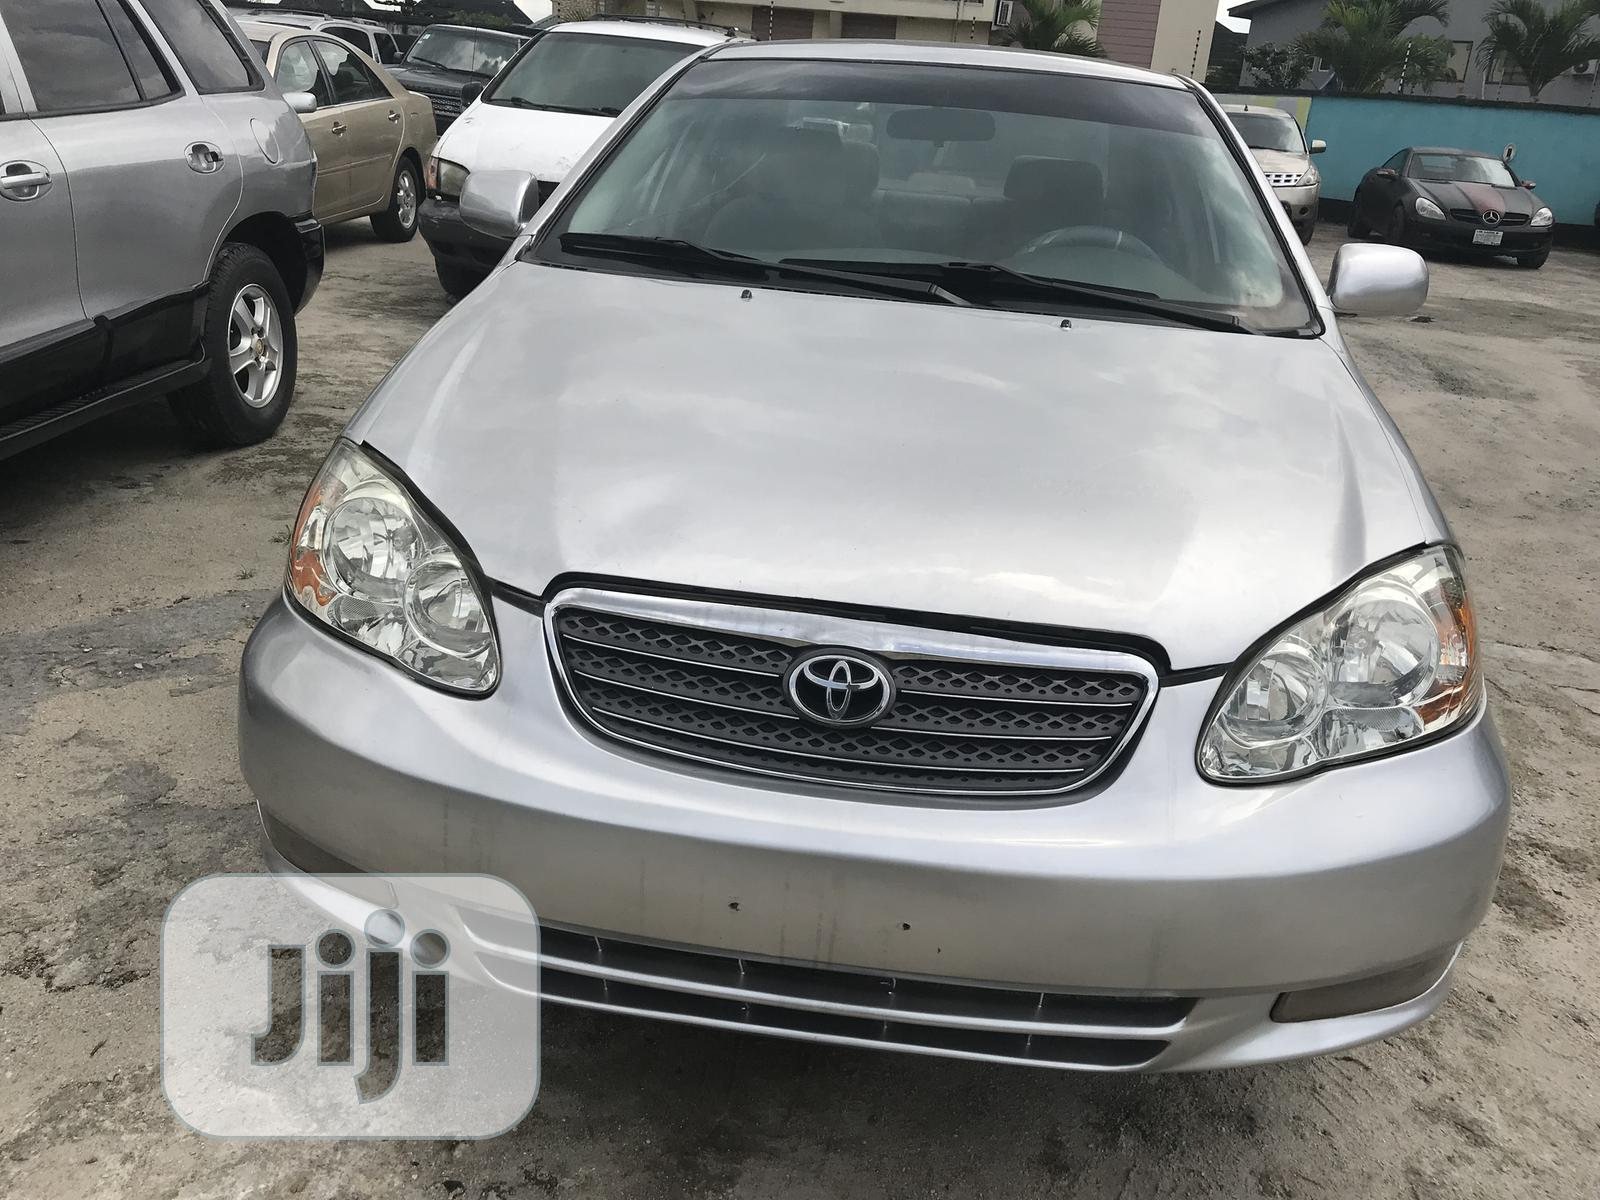 Toyota Corolla 2005 Silver In Port Harcourt Cars Queen Ikilowei Jiji Ng For Sale In Port Harcourt Buy Cars From Queen Ikilowei On Jiji Ng